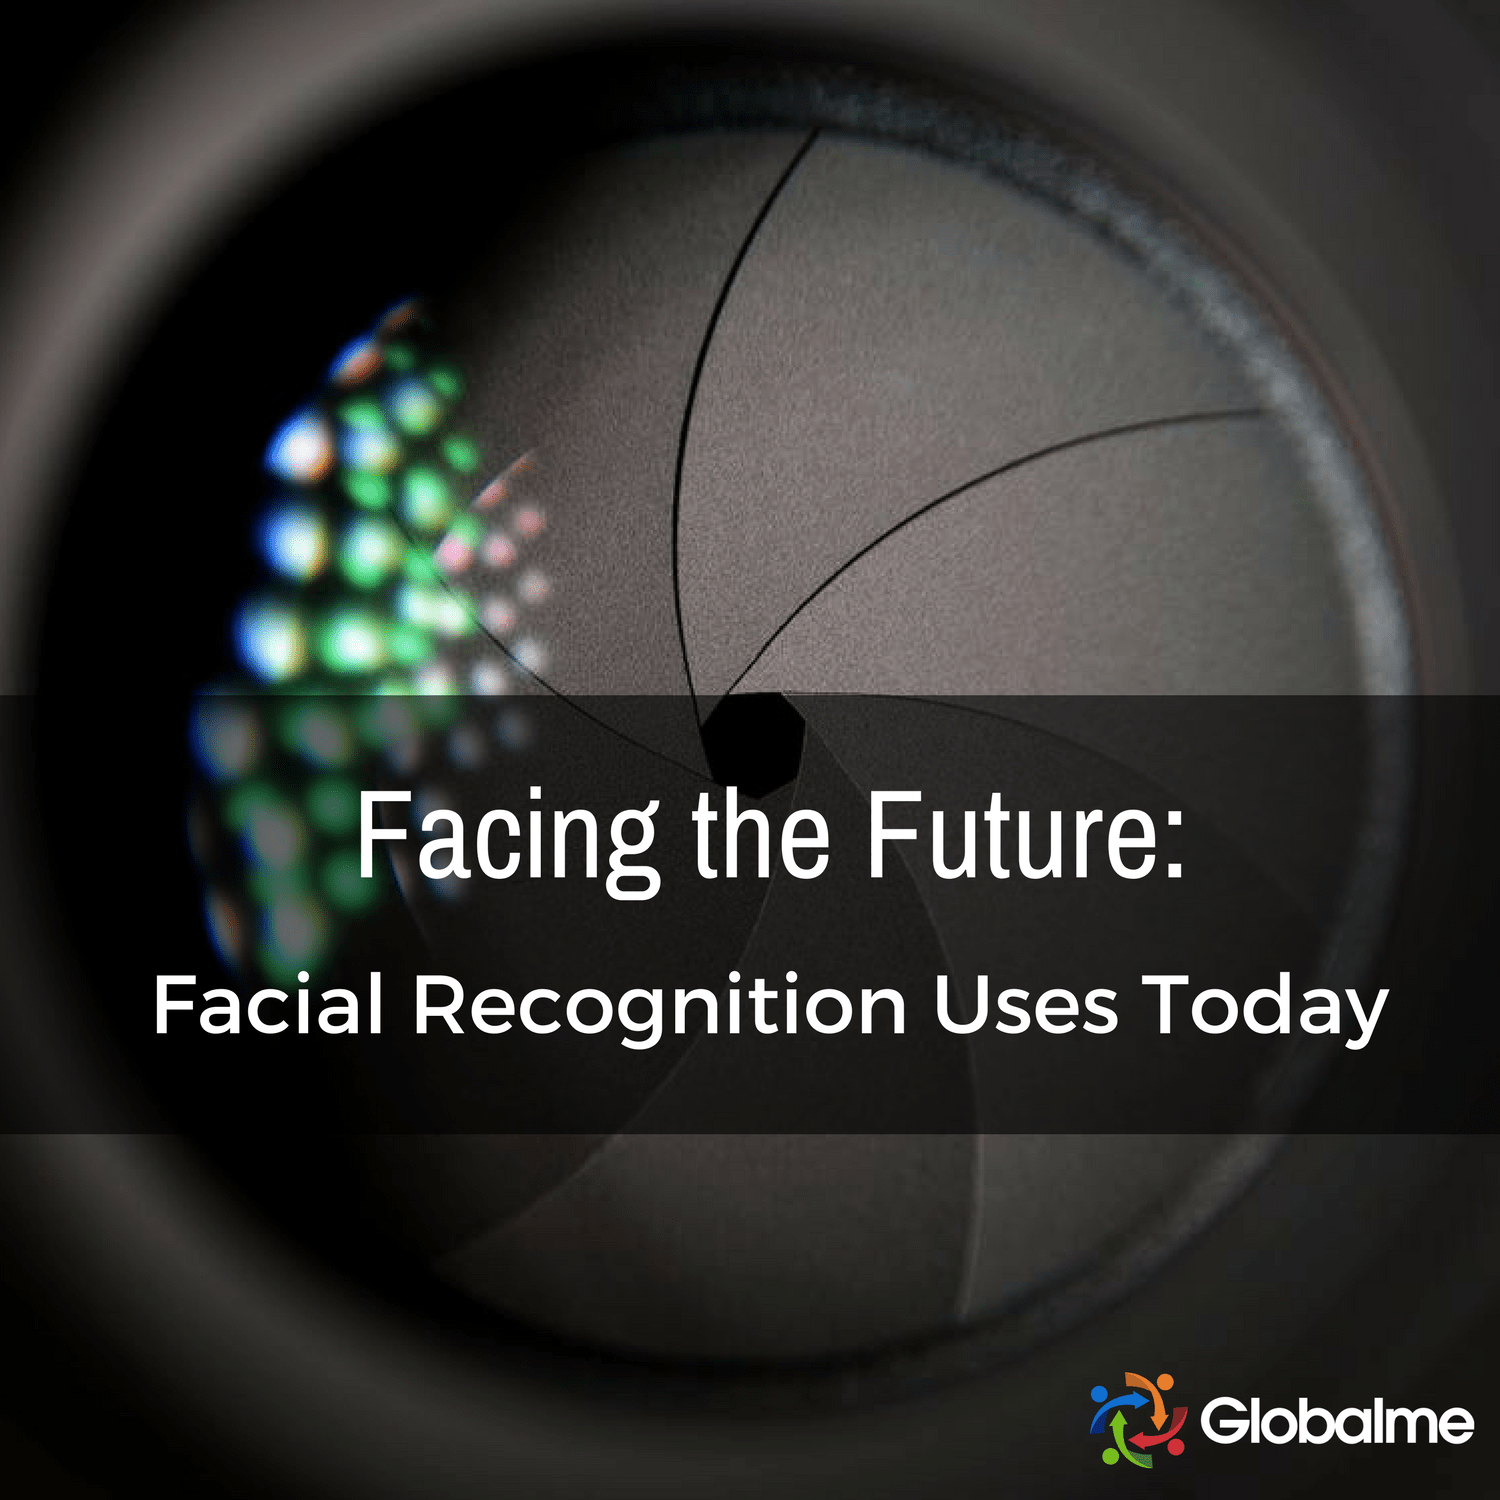 face recognition uses today